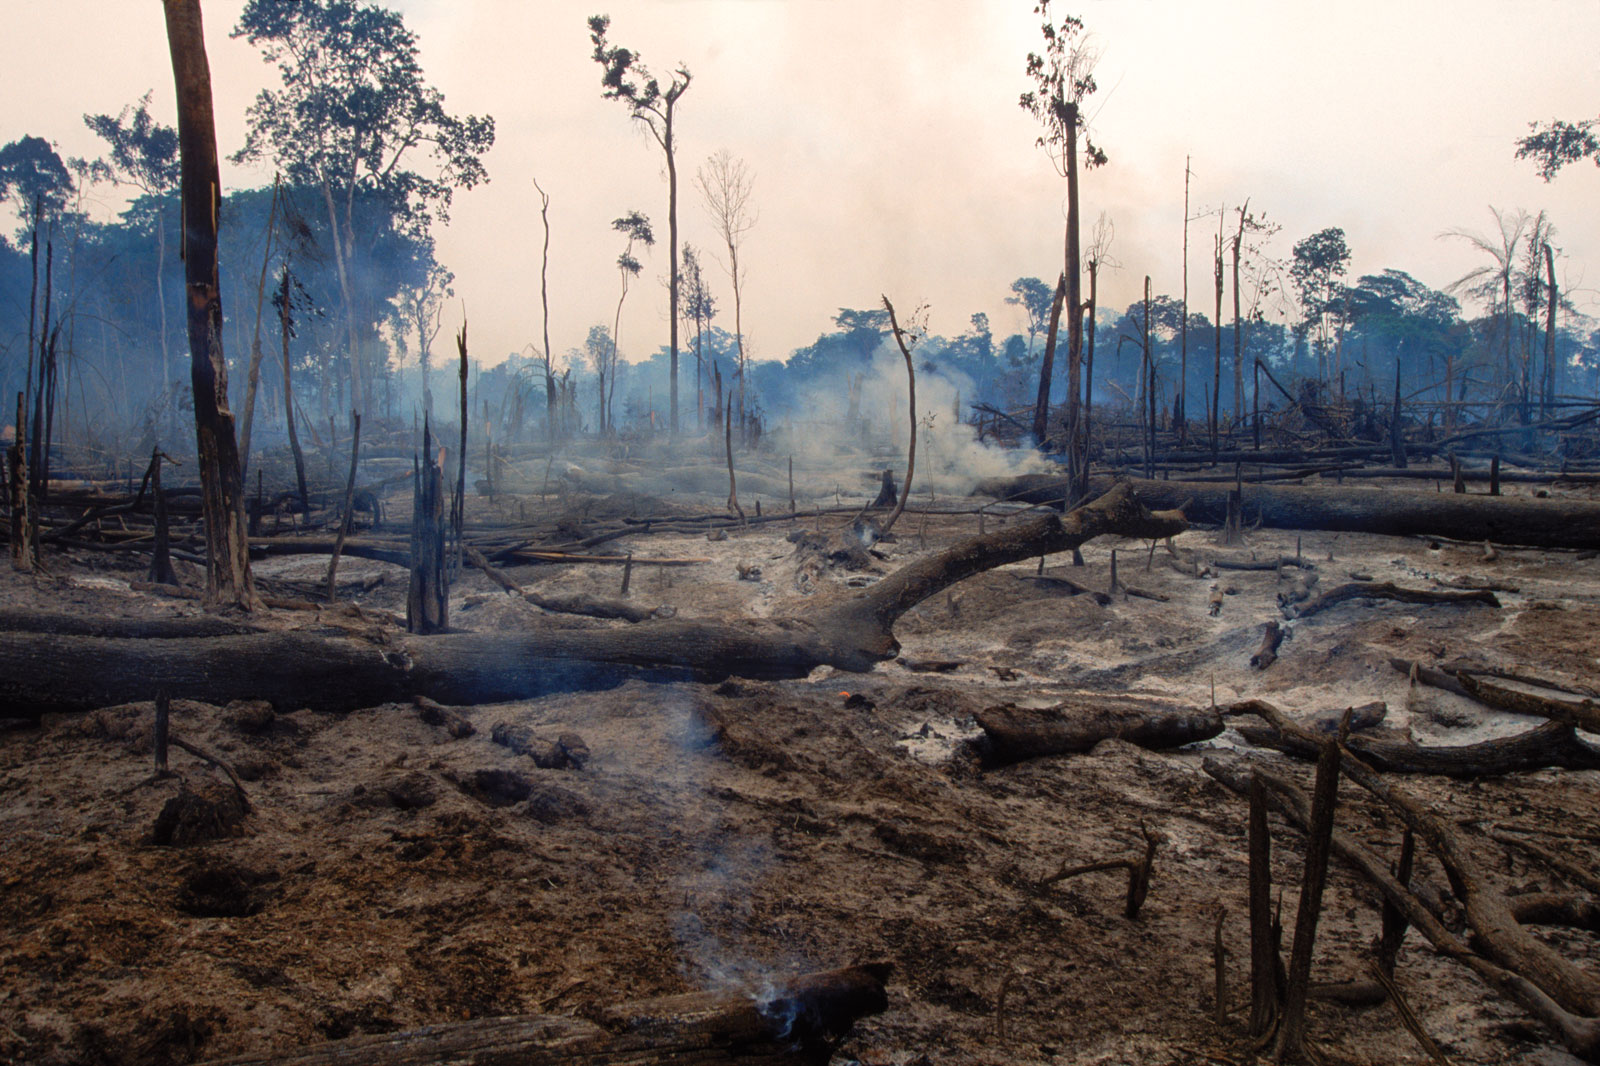 deforestation in the amazon rainforest and Nearly two-thirds of the amazon rainforest is located in brazil, making it the biggest component in the region's deforestation rate helpfully, brazil also has the.